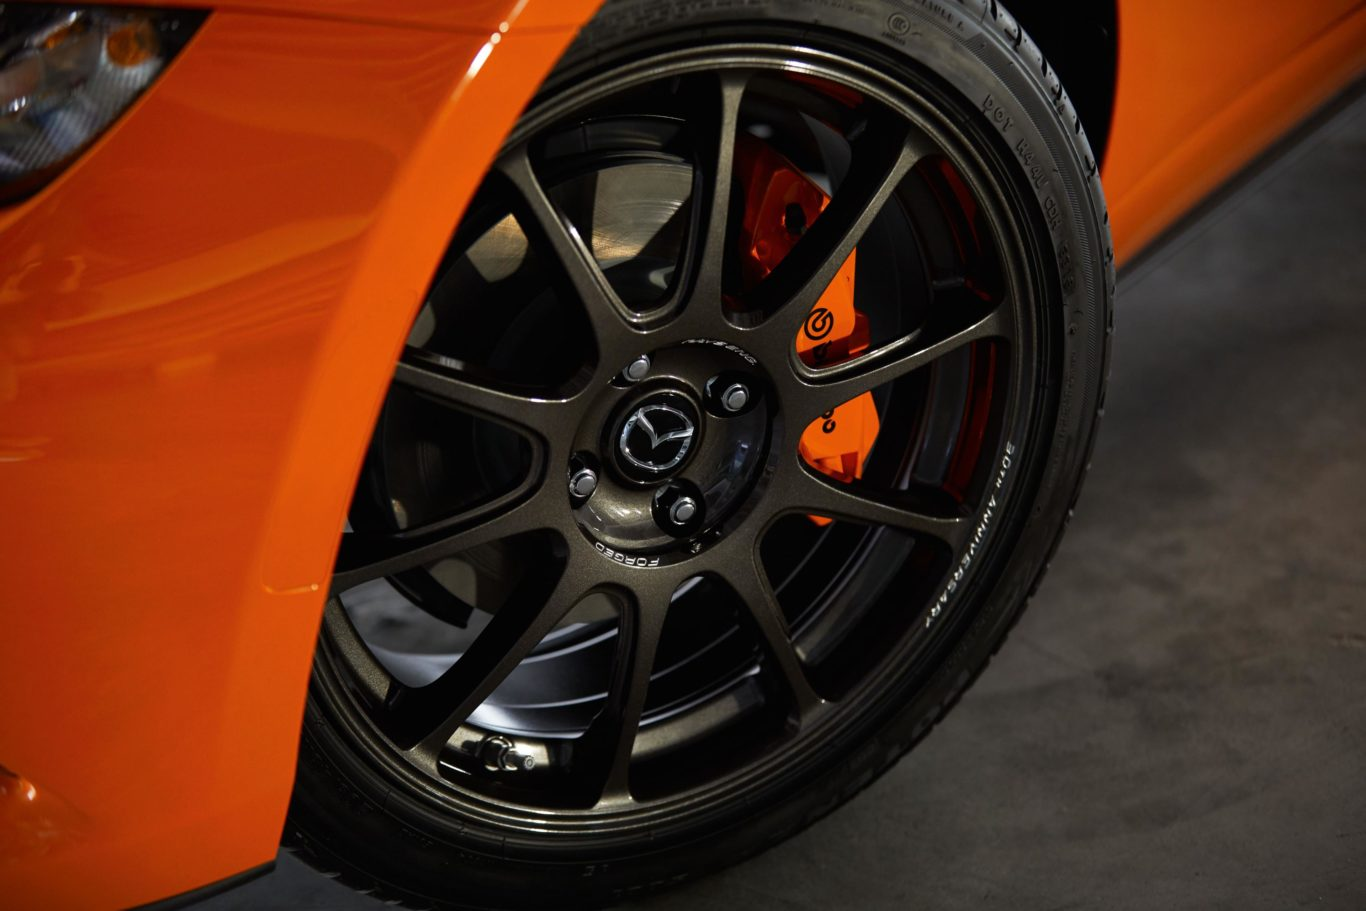 Special forged aluminium Rays wheels feature on the model